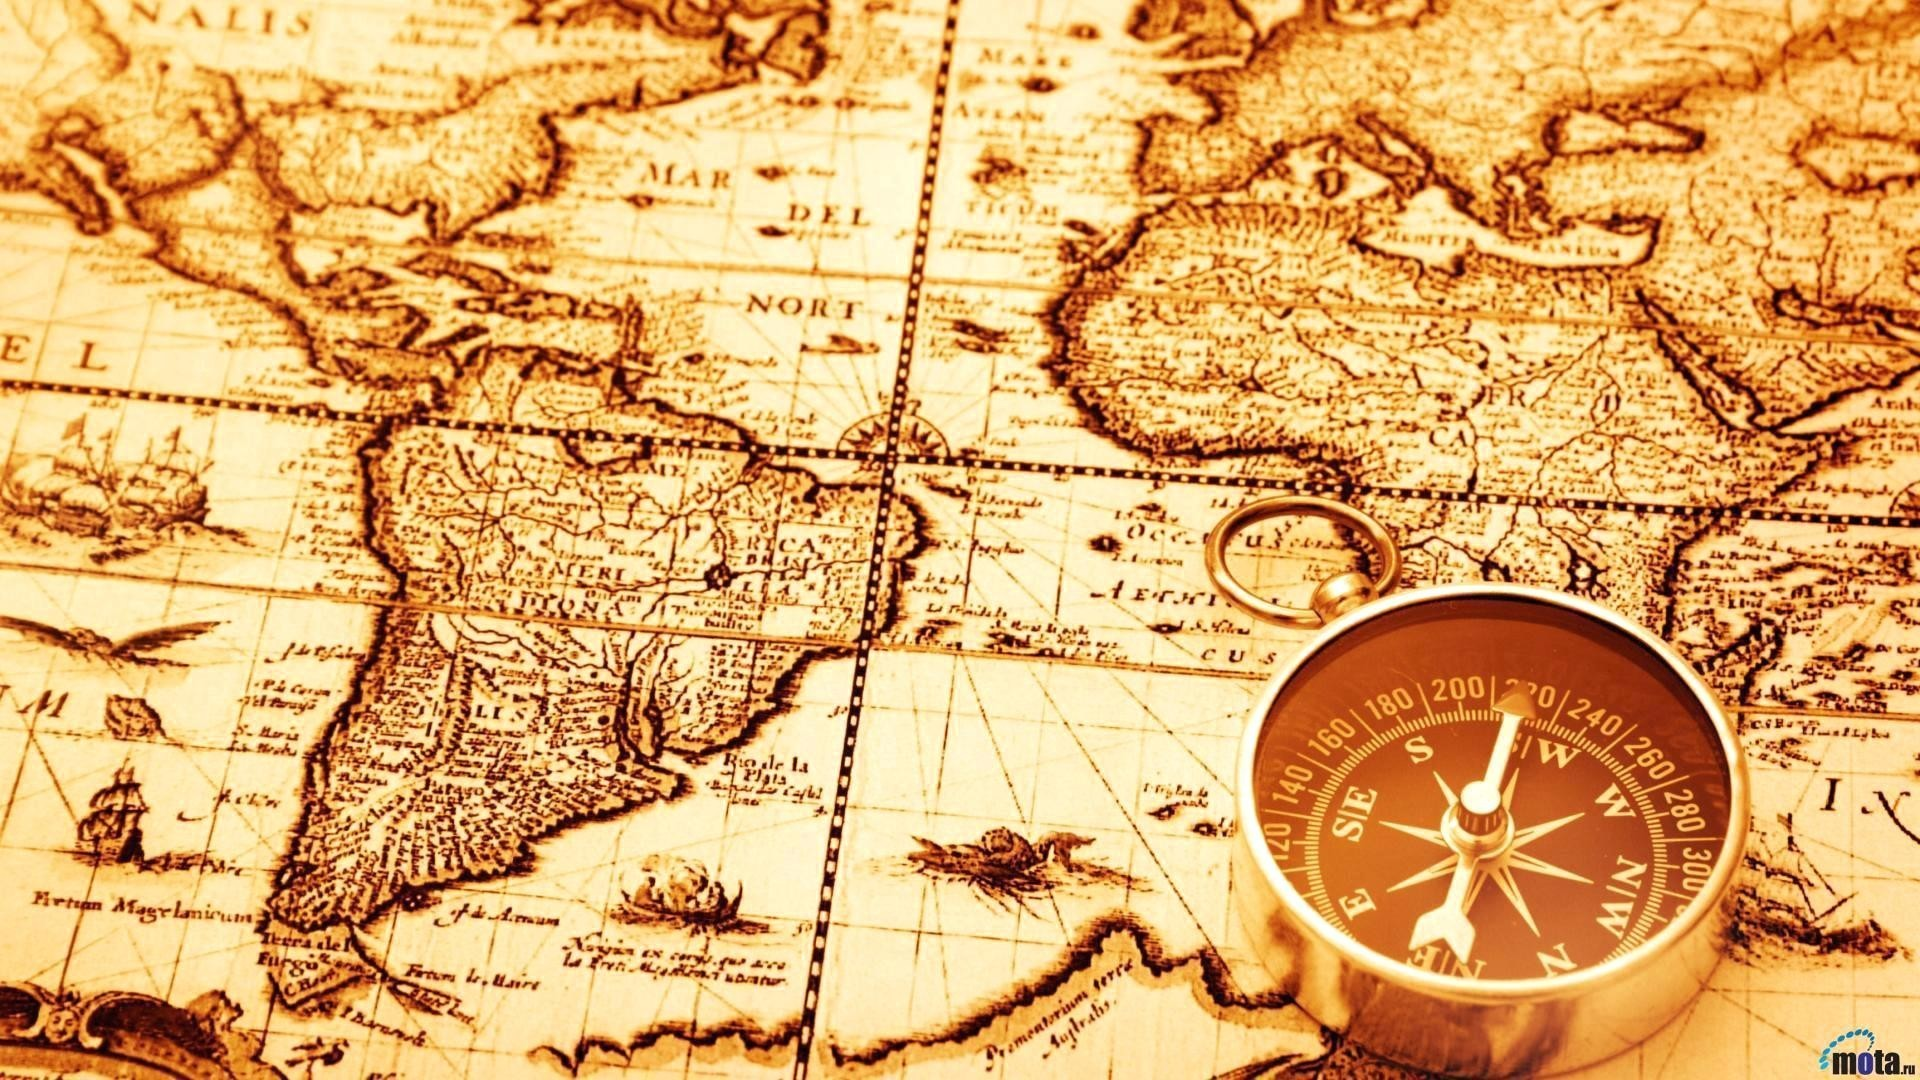 Vintage map wallpapers 60 background pictures 1920x1080 world map wallpaper for windows 10 new free antique map background hd wallpapers background photos gumiabroncs Choice Image